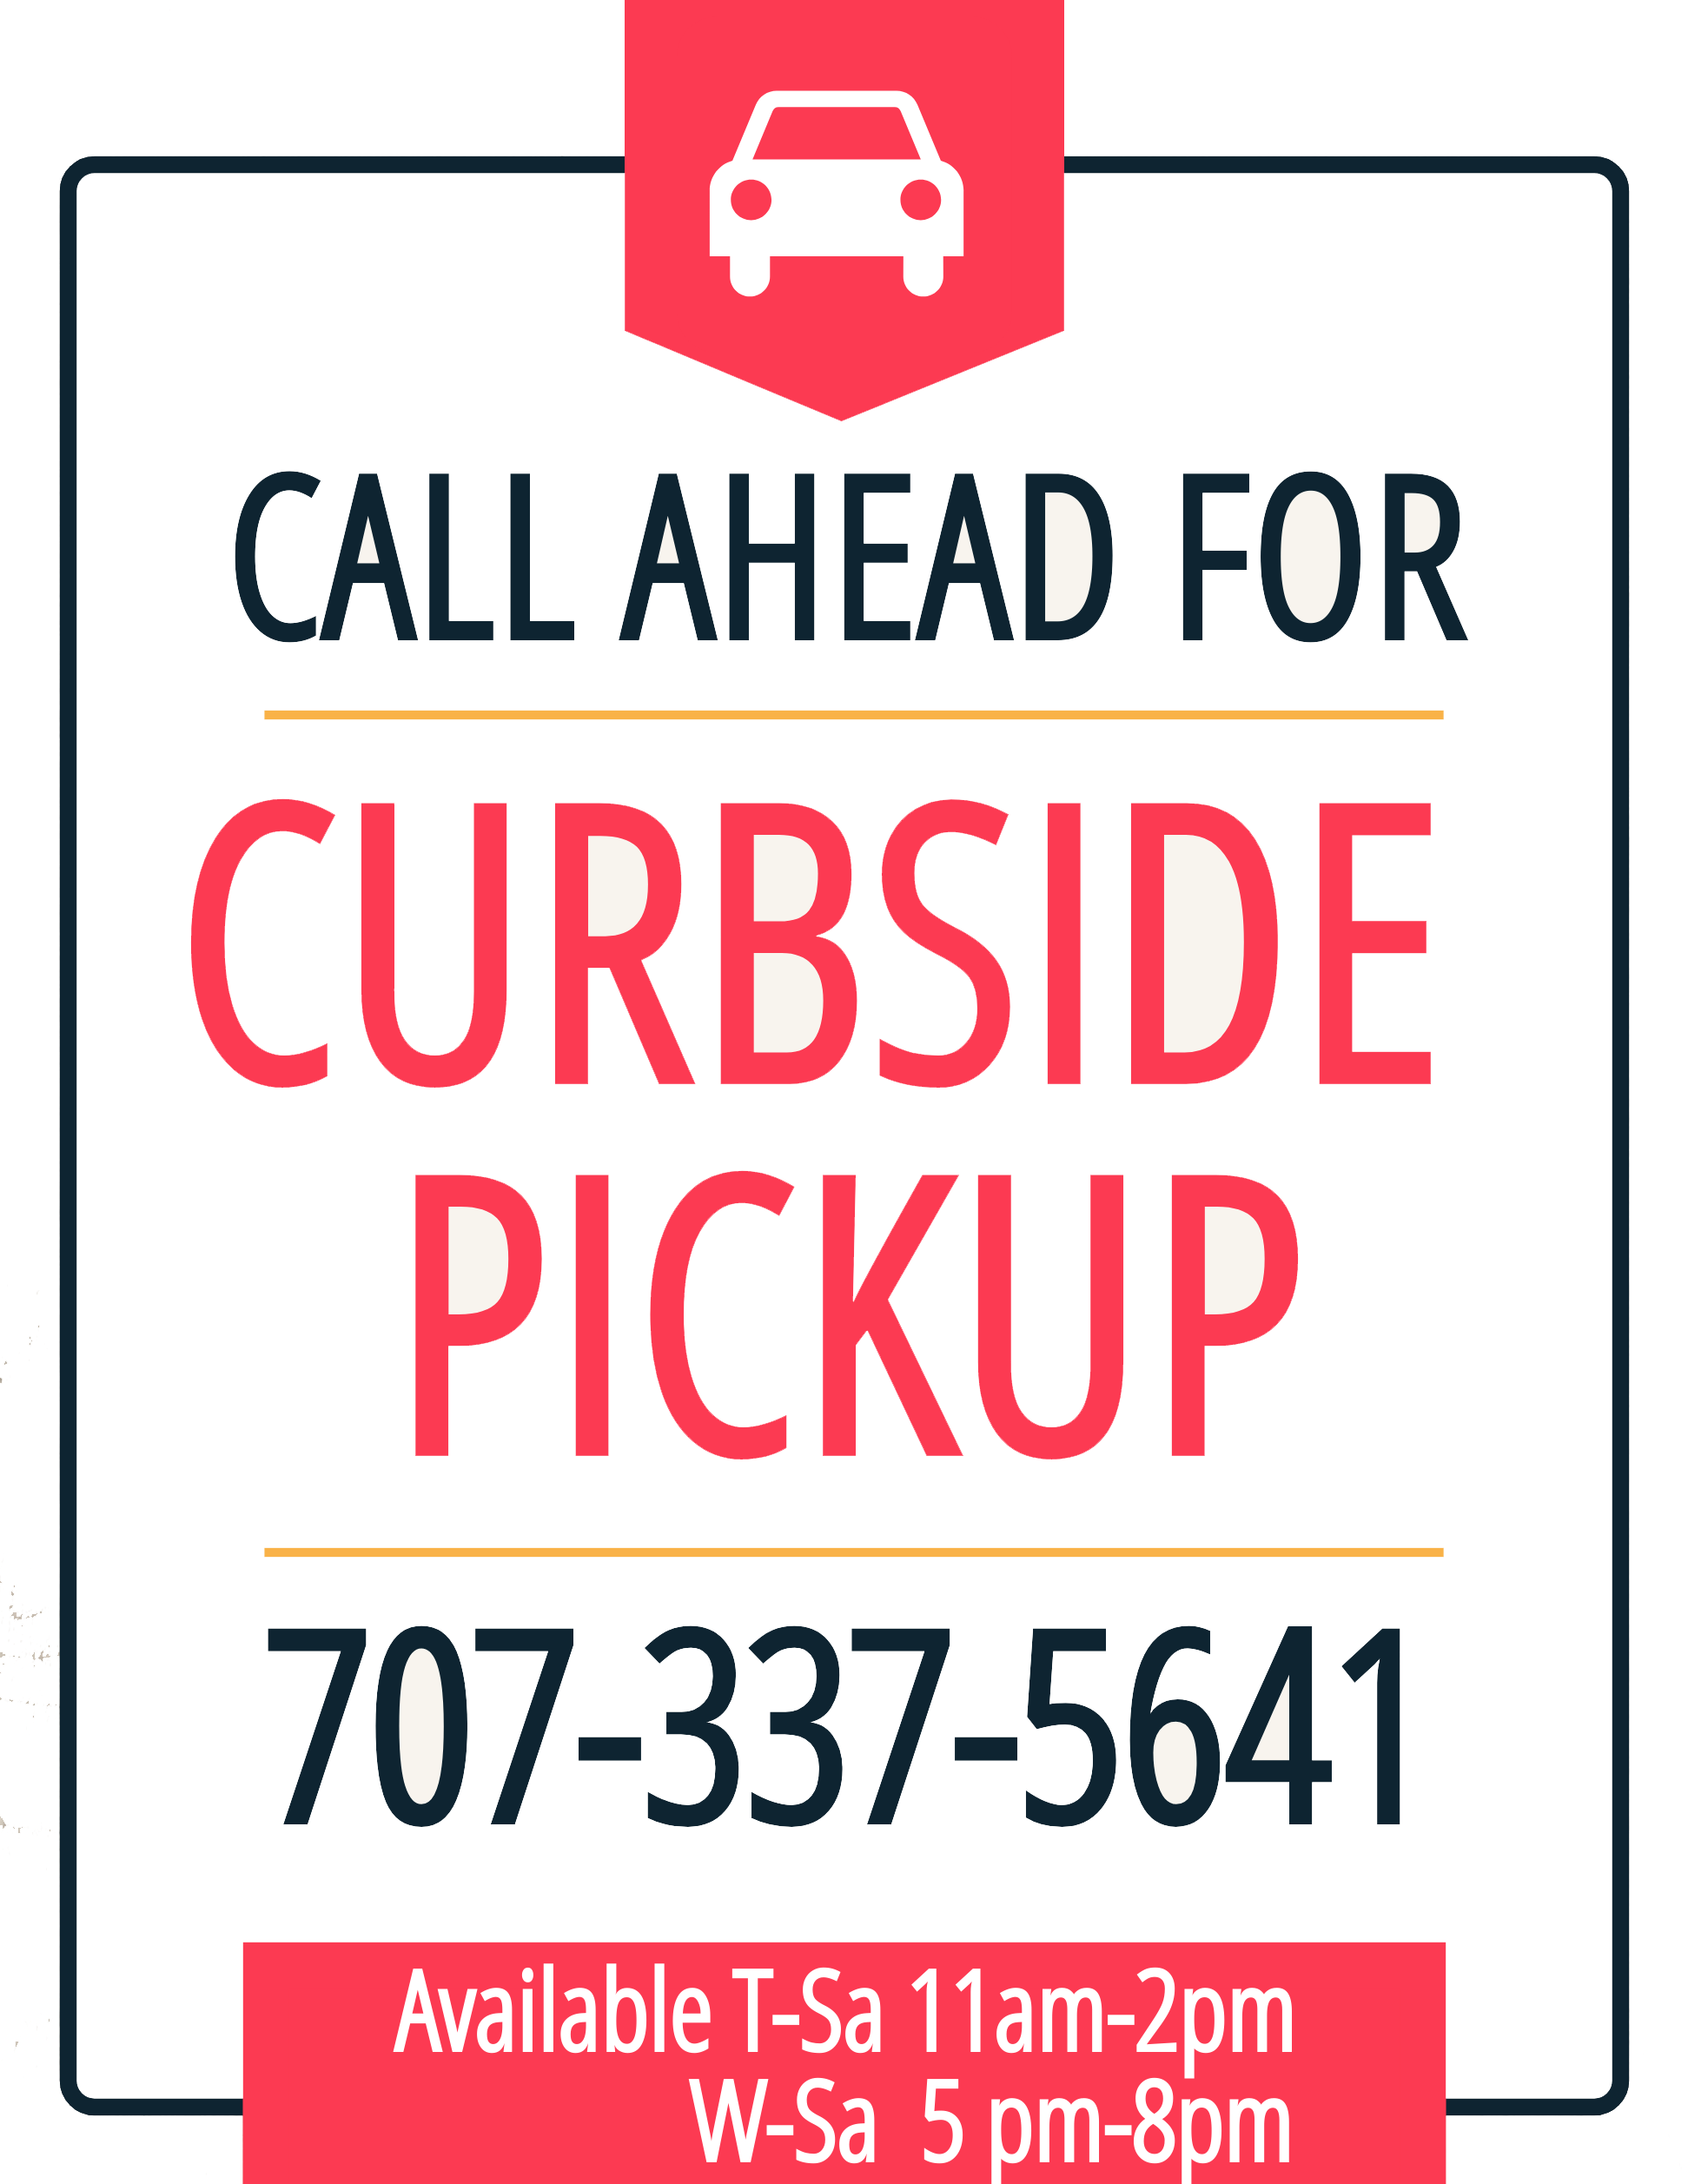 Curbside, No-Contact Pickups